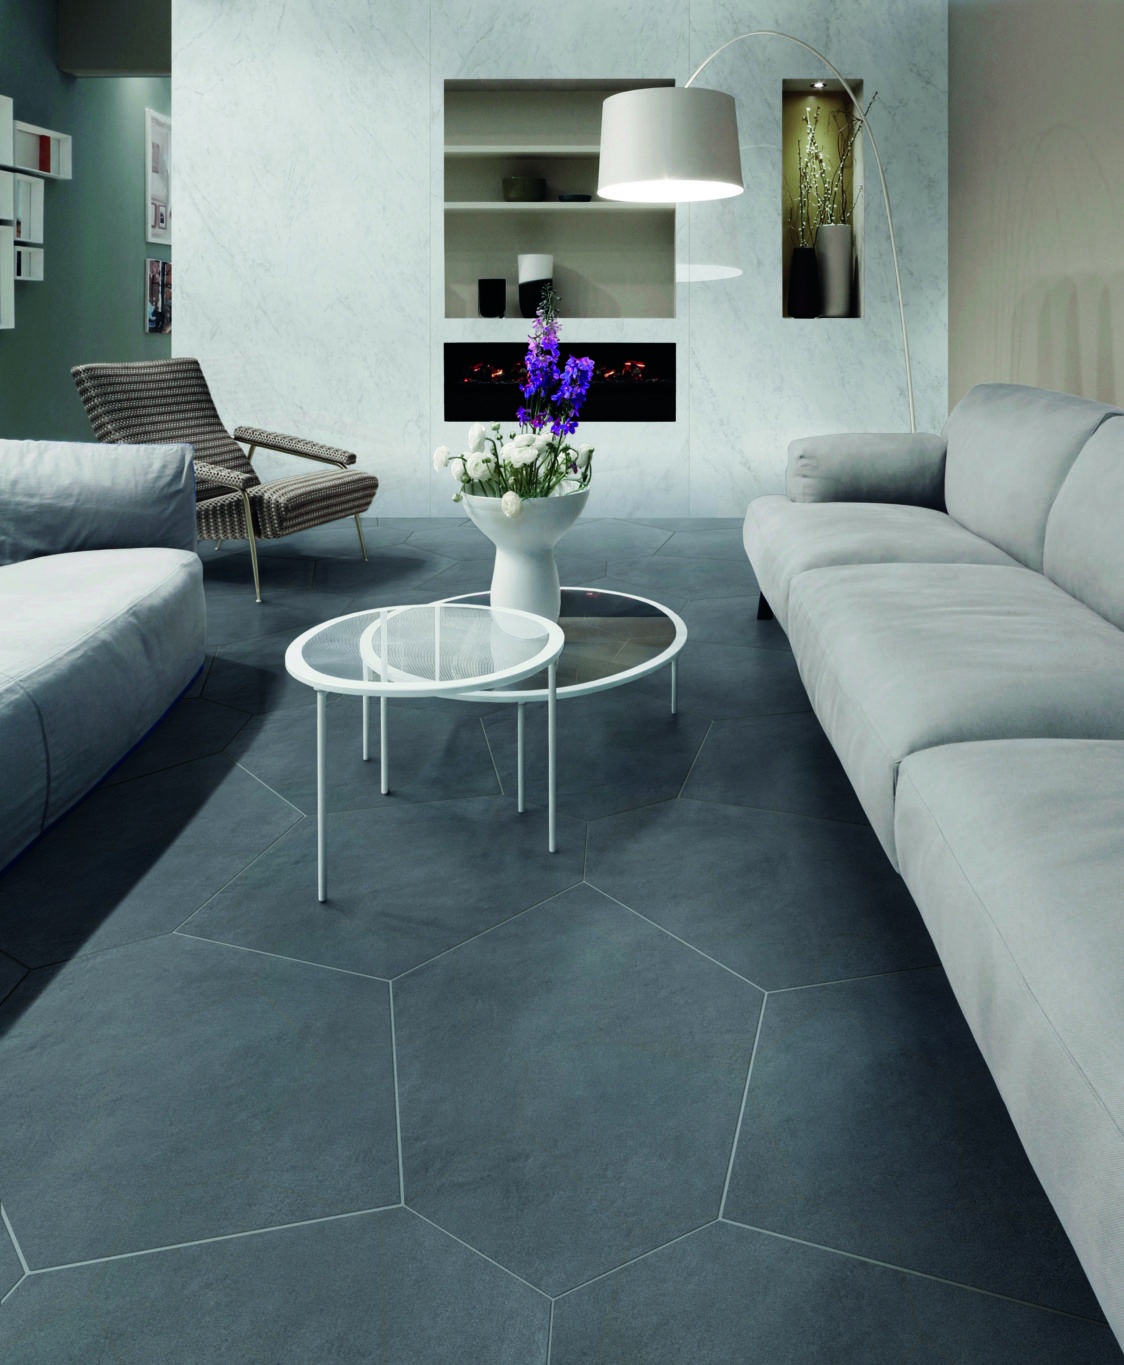 Ceramic Tile Polygons Make A Great Flooring Compliment To